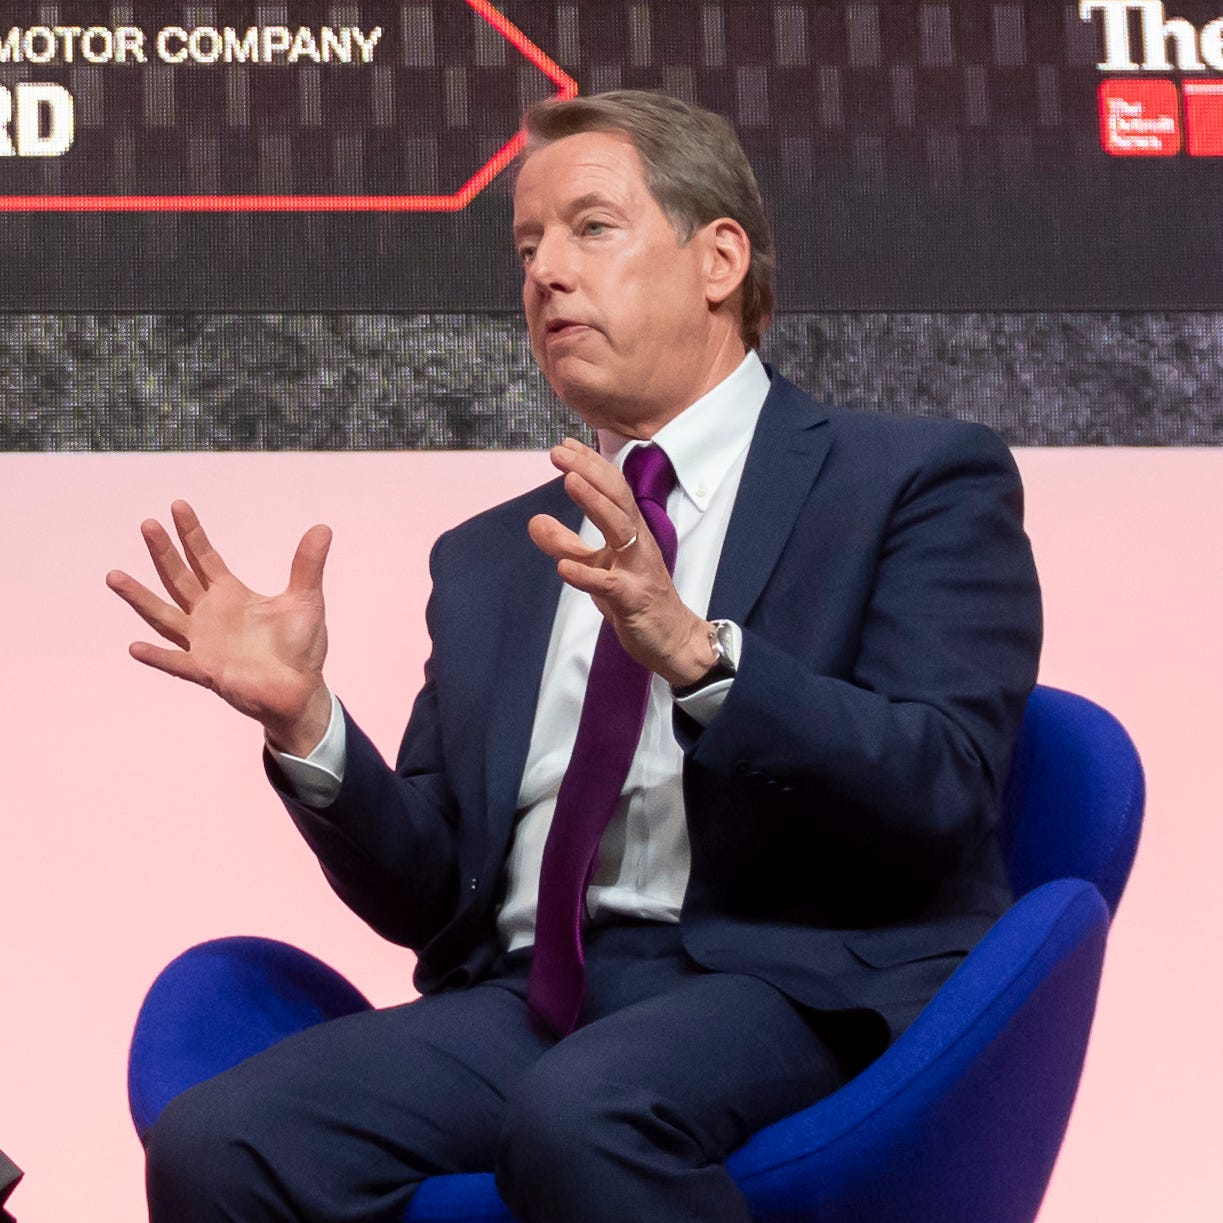 Bill Ford: Washington standoff is bad for business